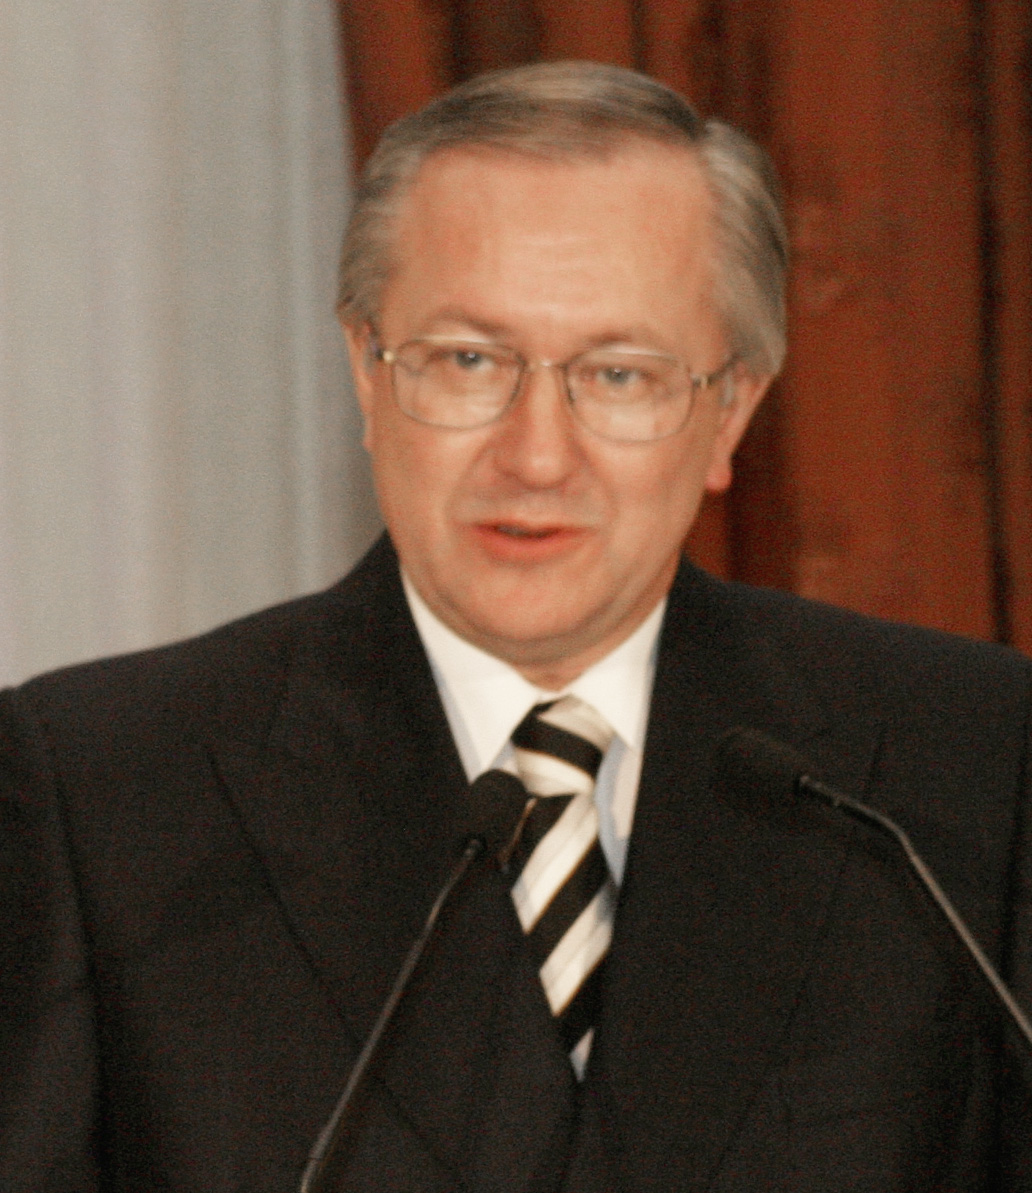 The Hon. Borys Tarasyuk